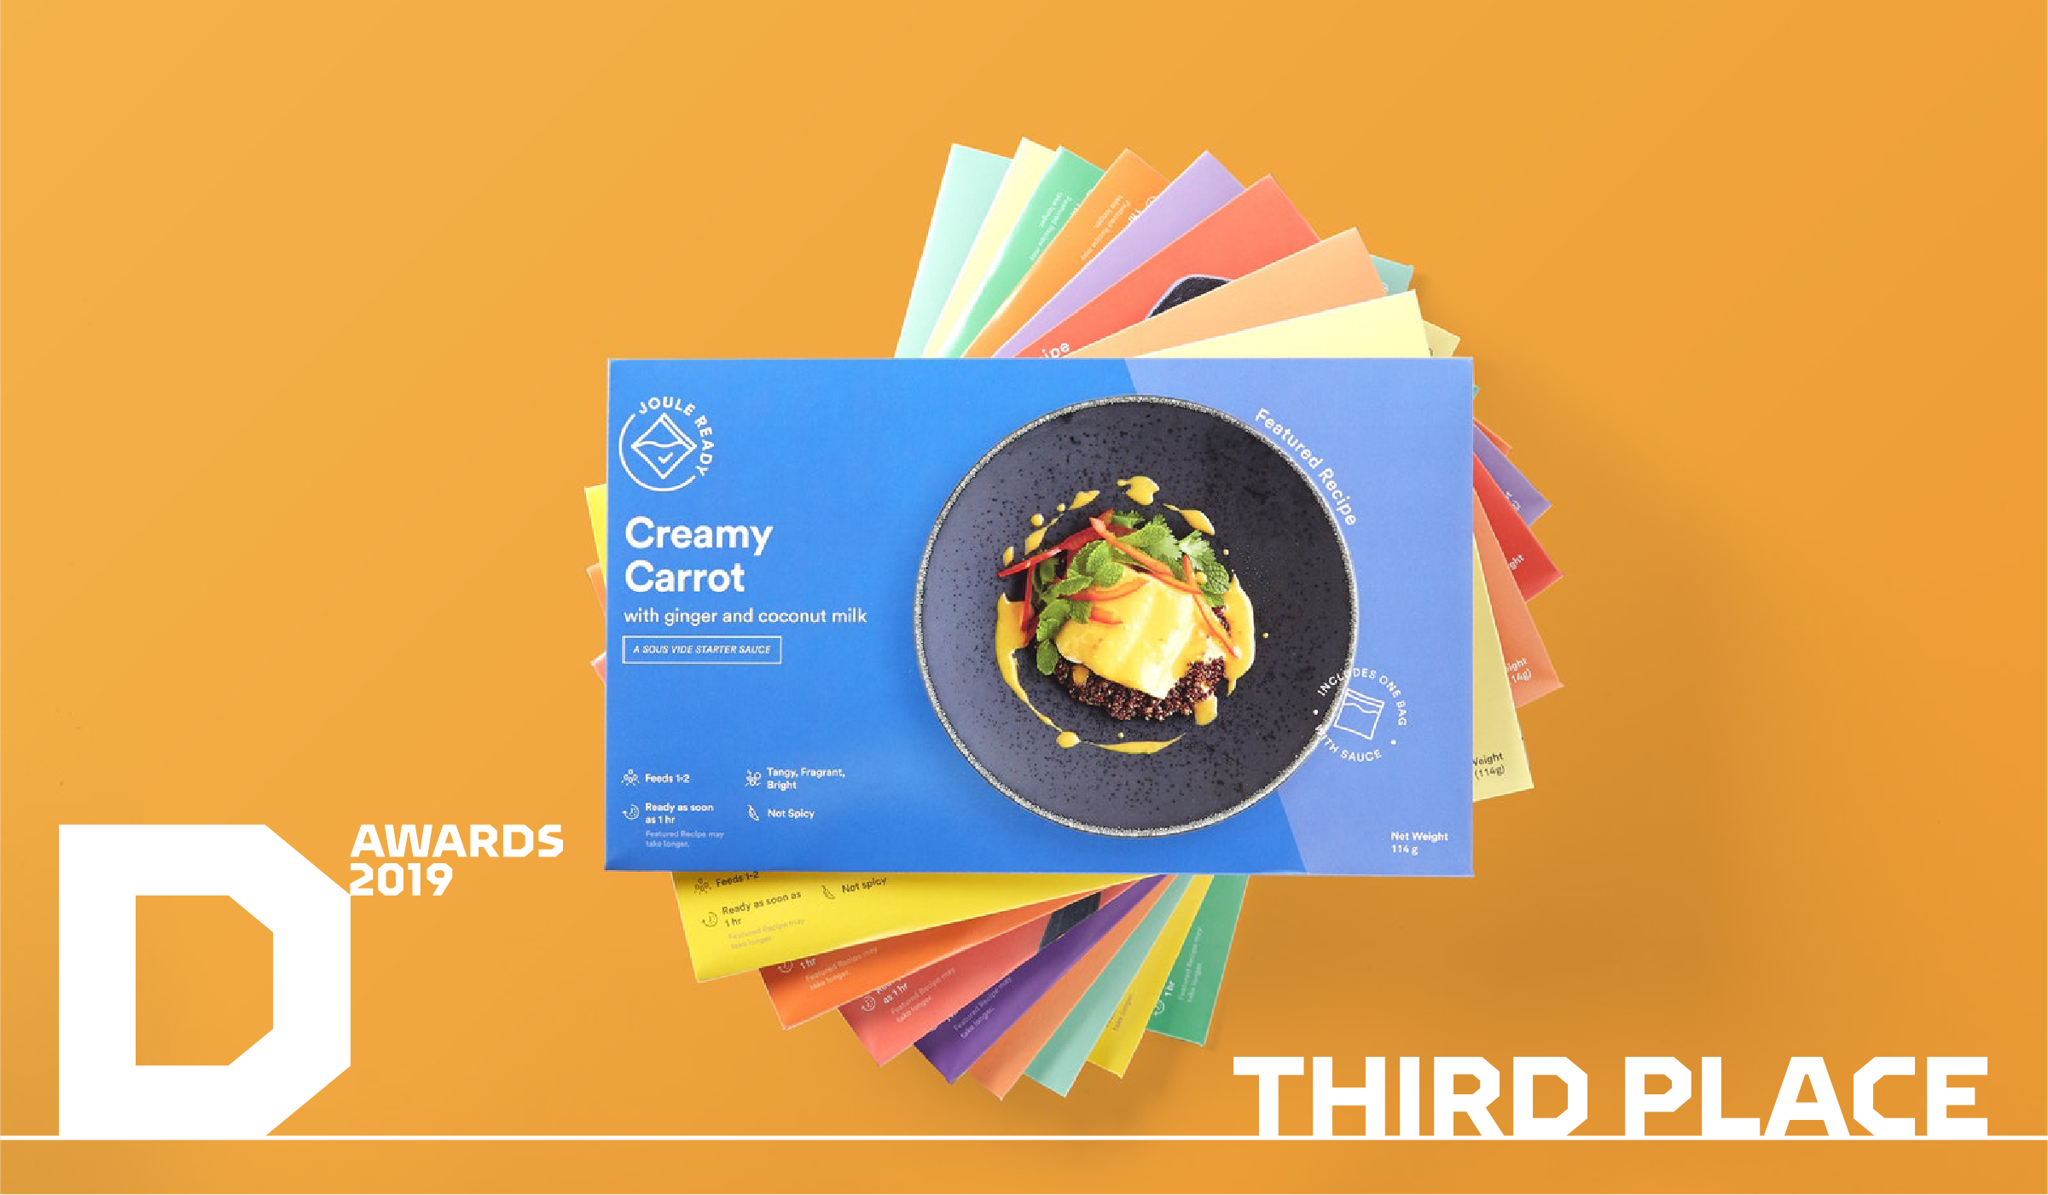 Announcing Dieline Awards 2019 Third Place Winners | Dieline